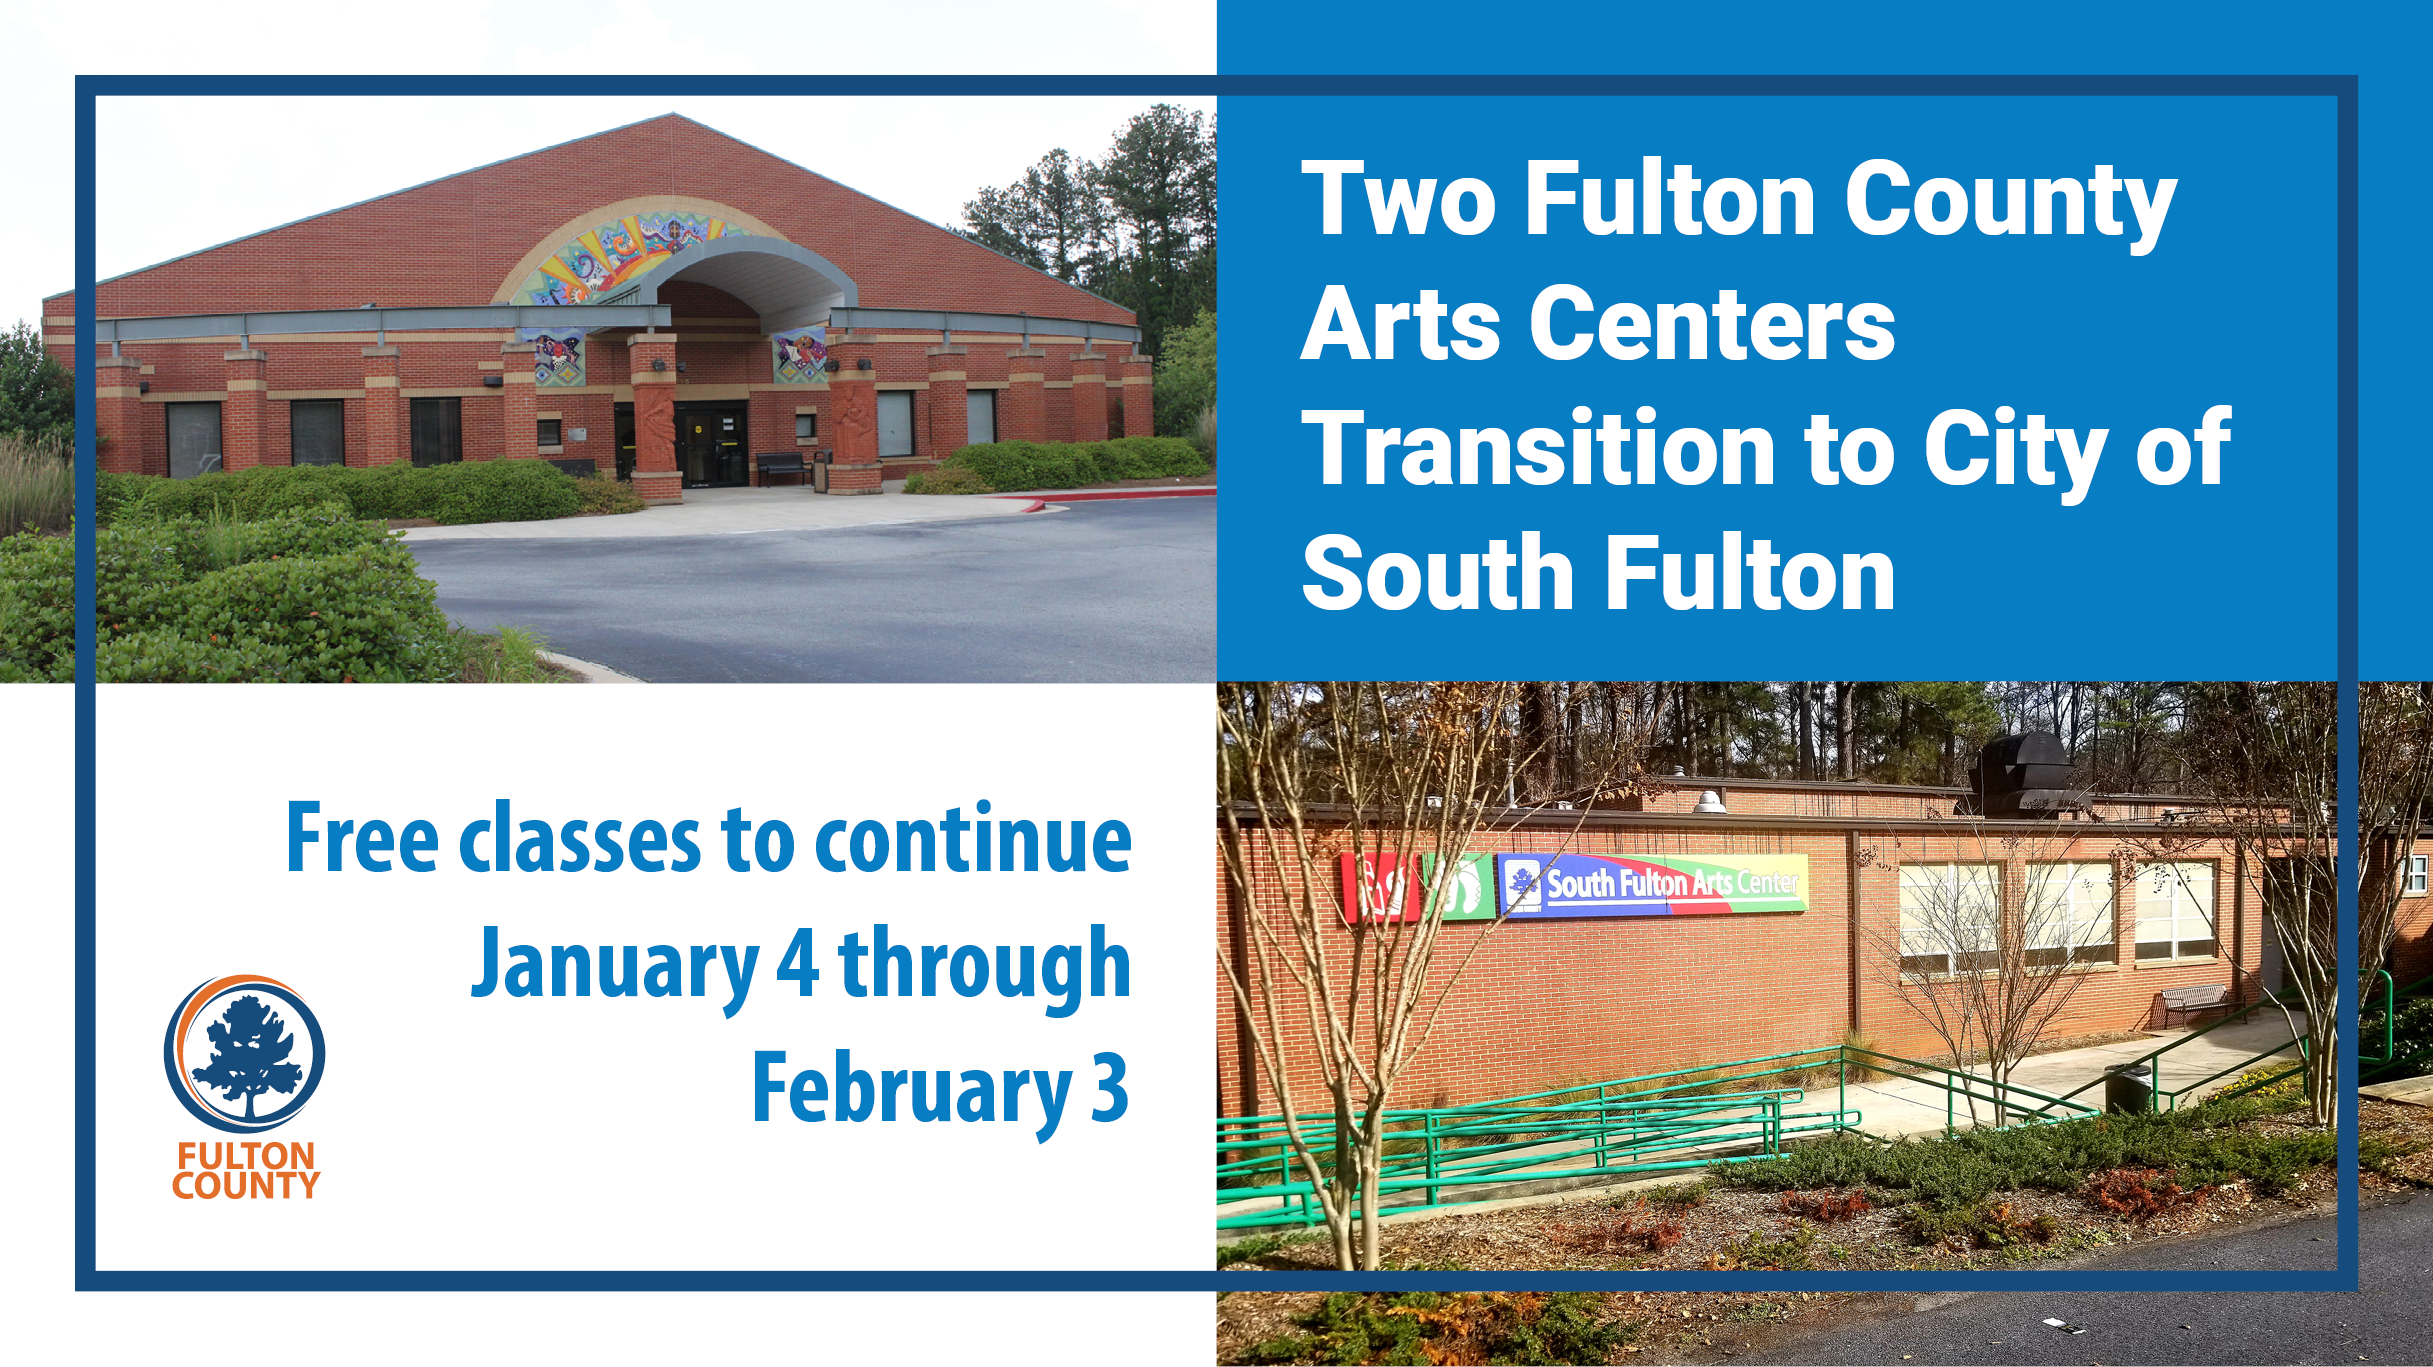 Two Art centers to transition to South Fulton